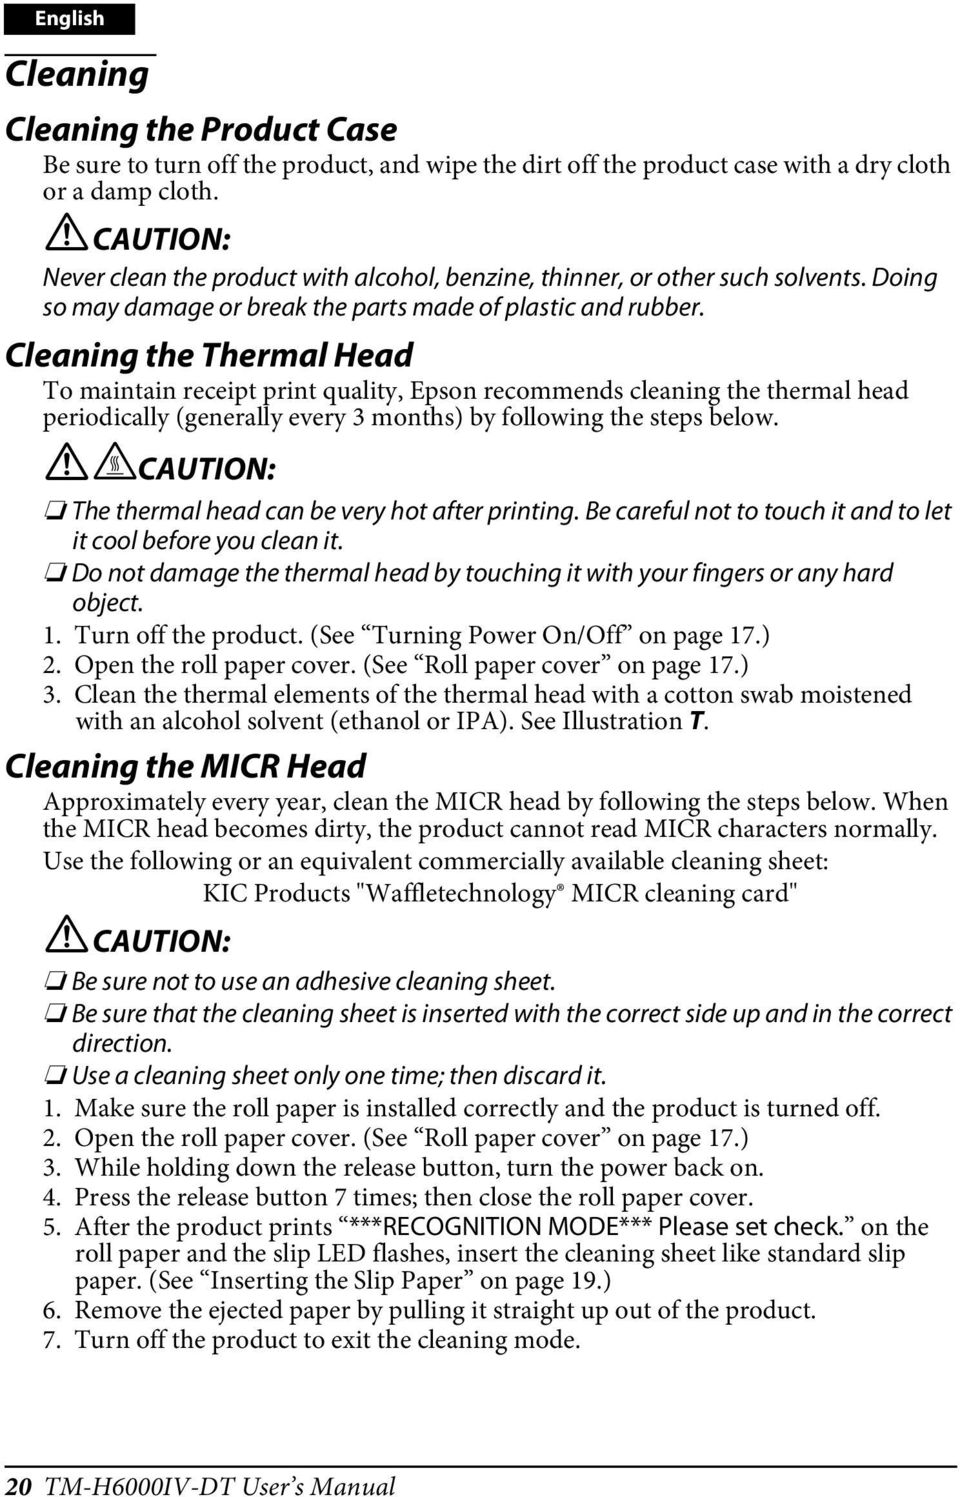 Cleaning the Thermal Head To maintain receipt print quality, Epson recommends cleaning the thermal head periodically (generally every 3 months) by following the steps below.